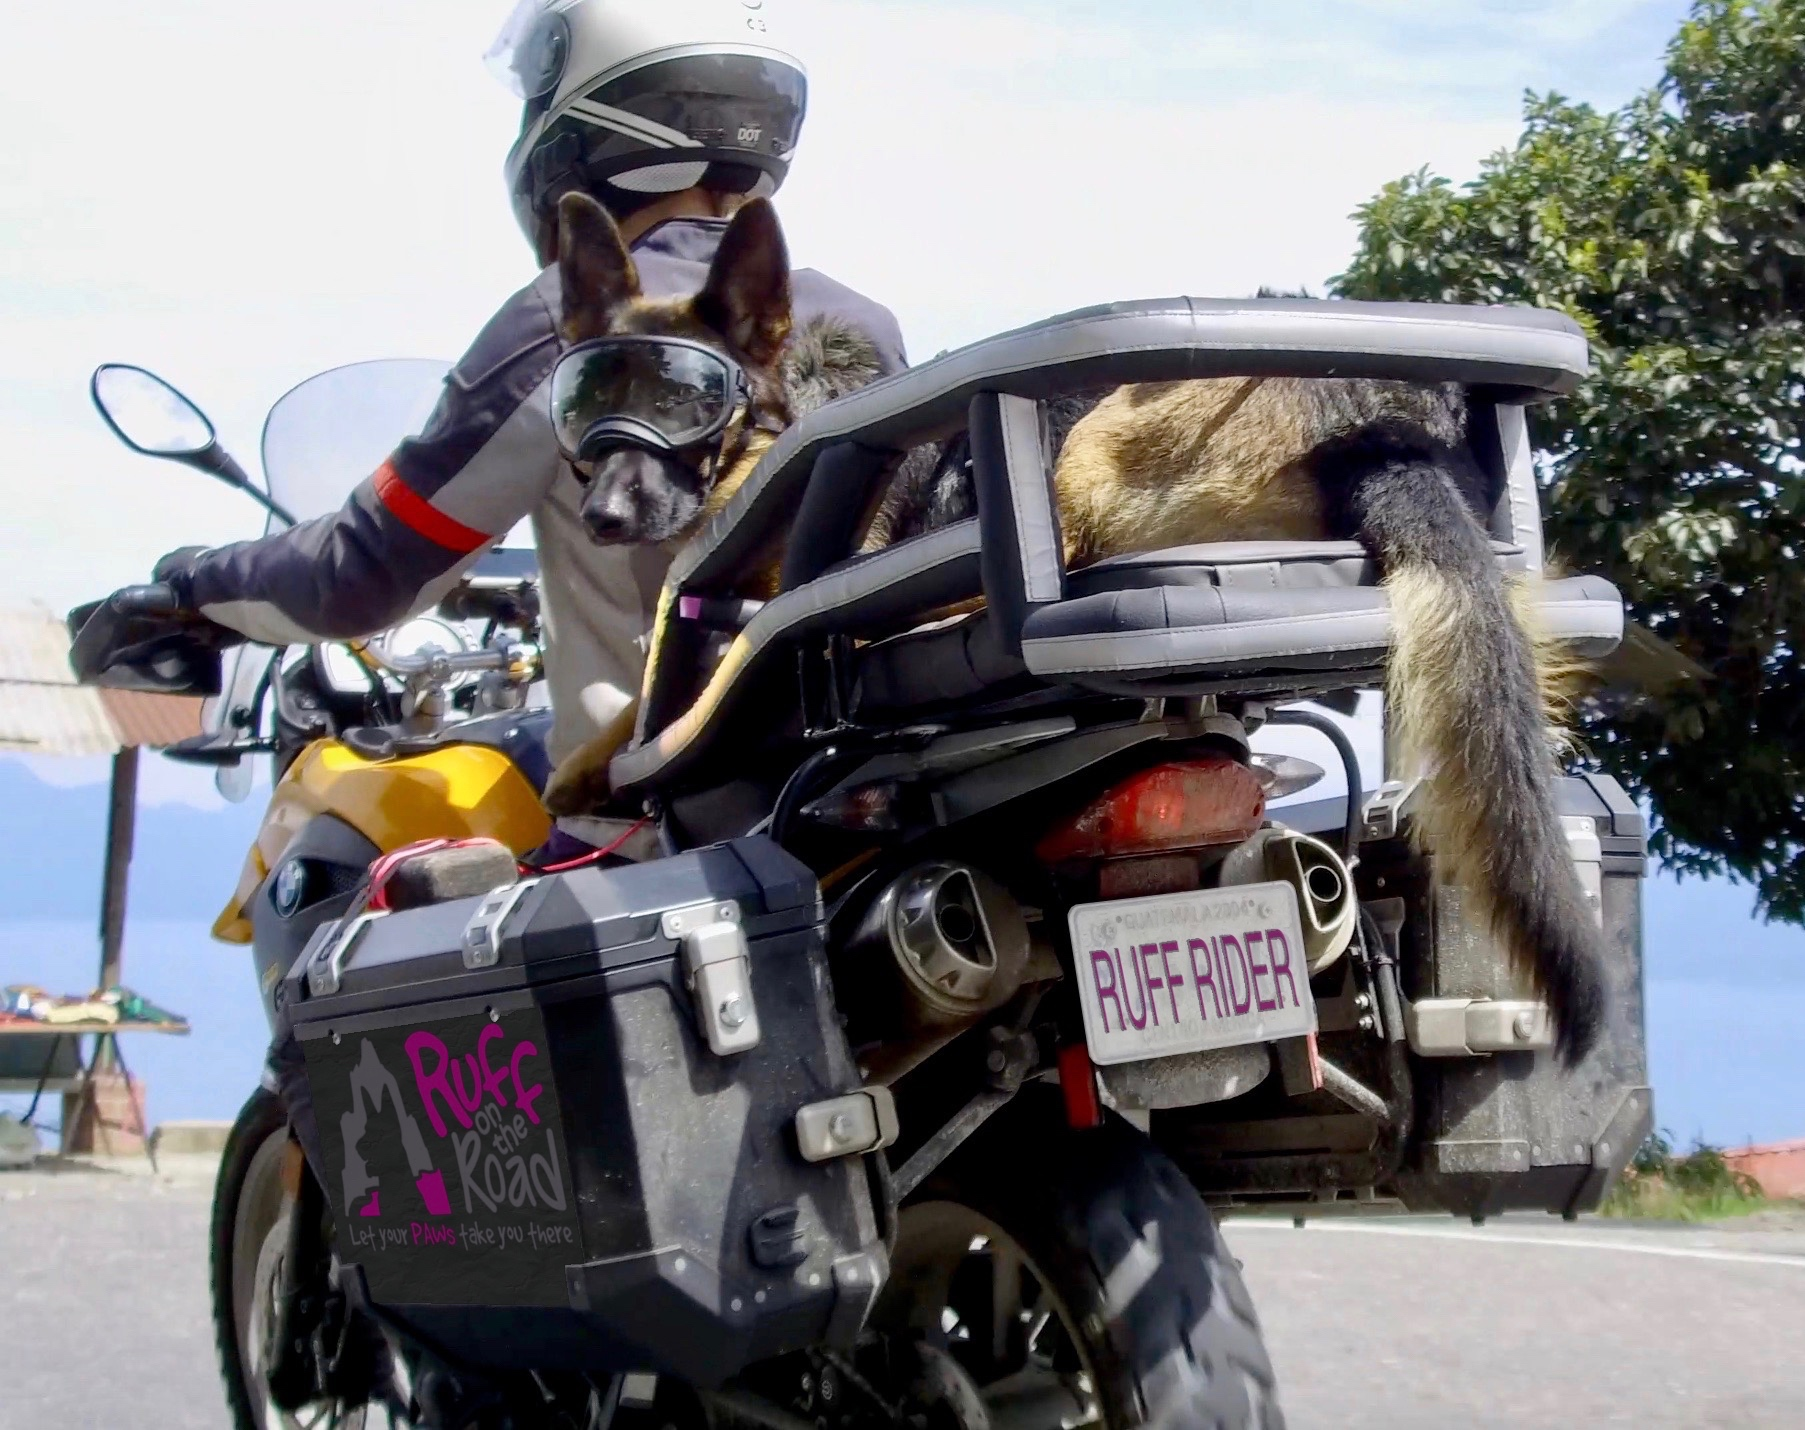 Jess-Greg-Stone-Ruff-on-the-Road-dog-adventure-rider-radio-motorcycle-podcast-7.jpg